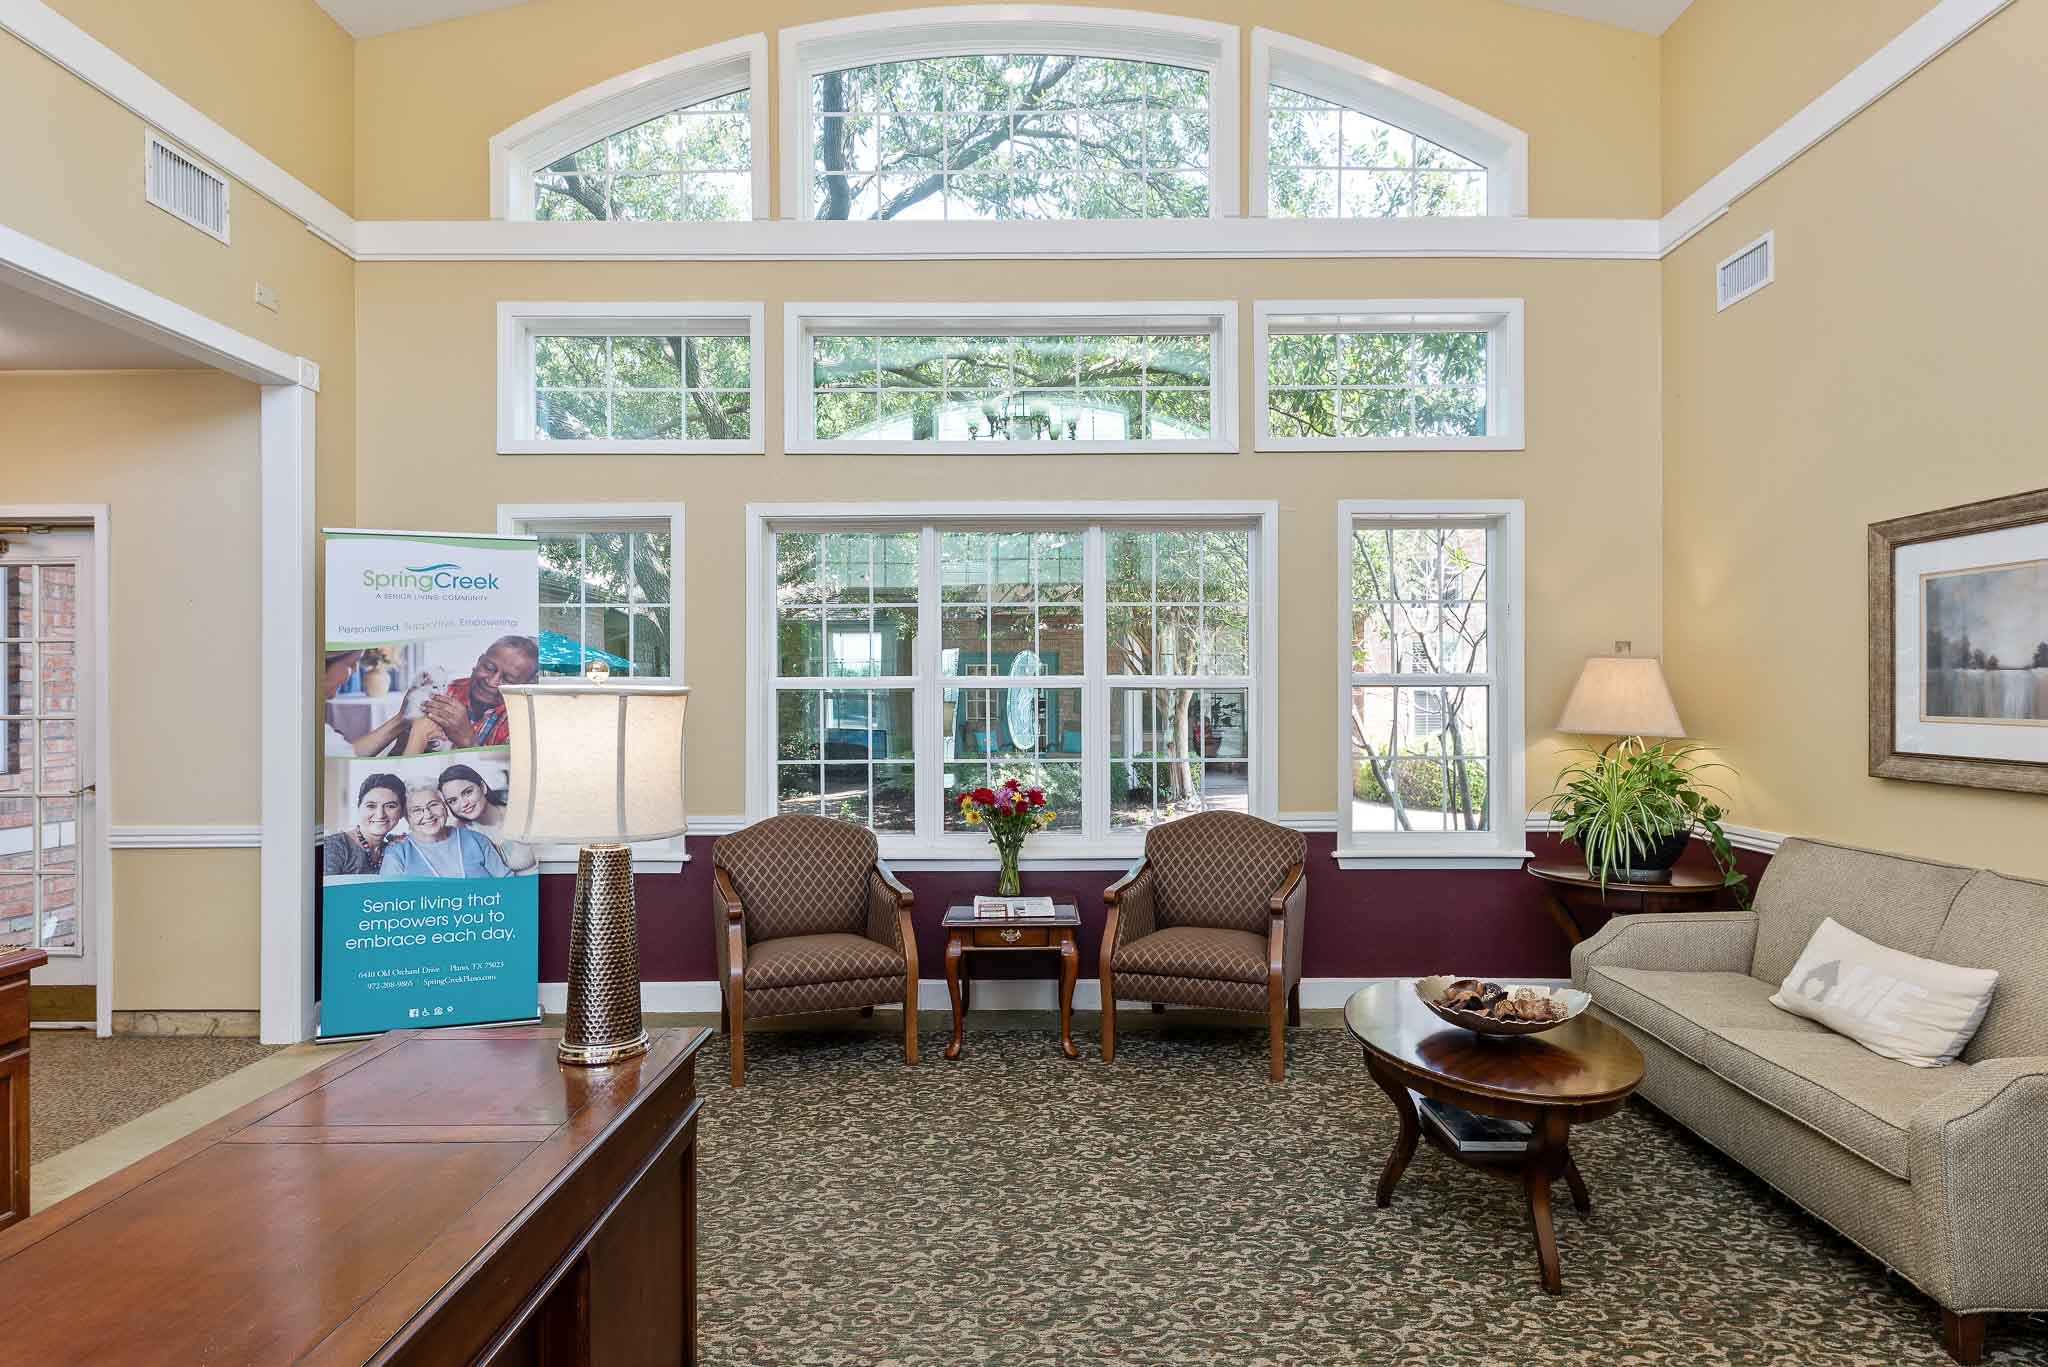 Nursing home lobby